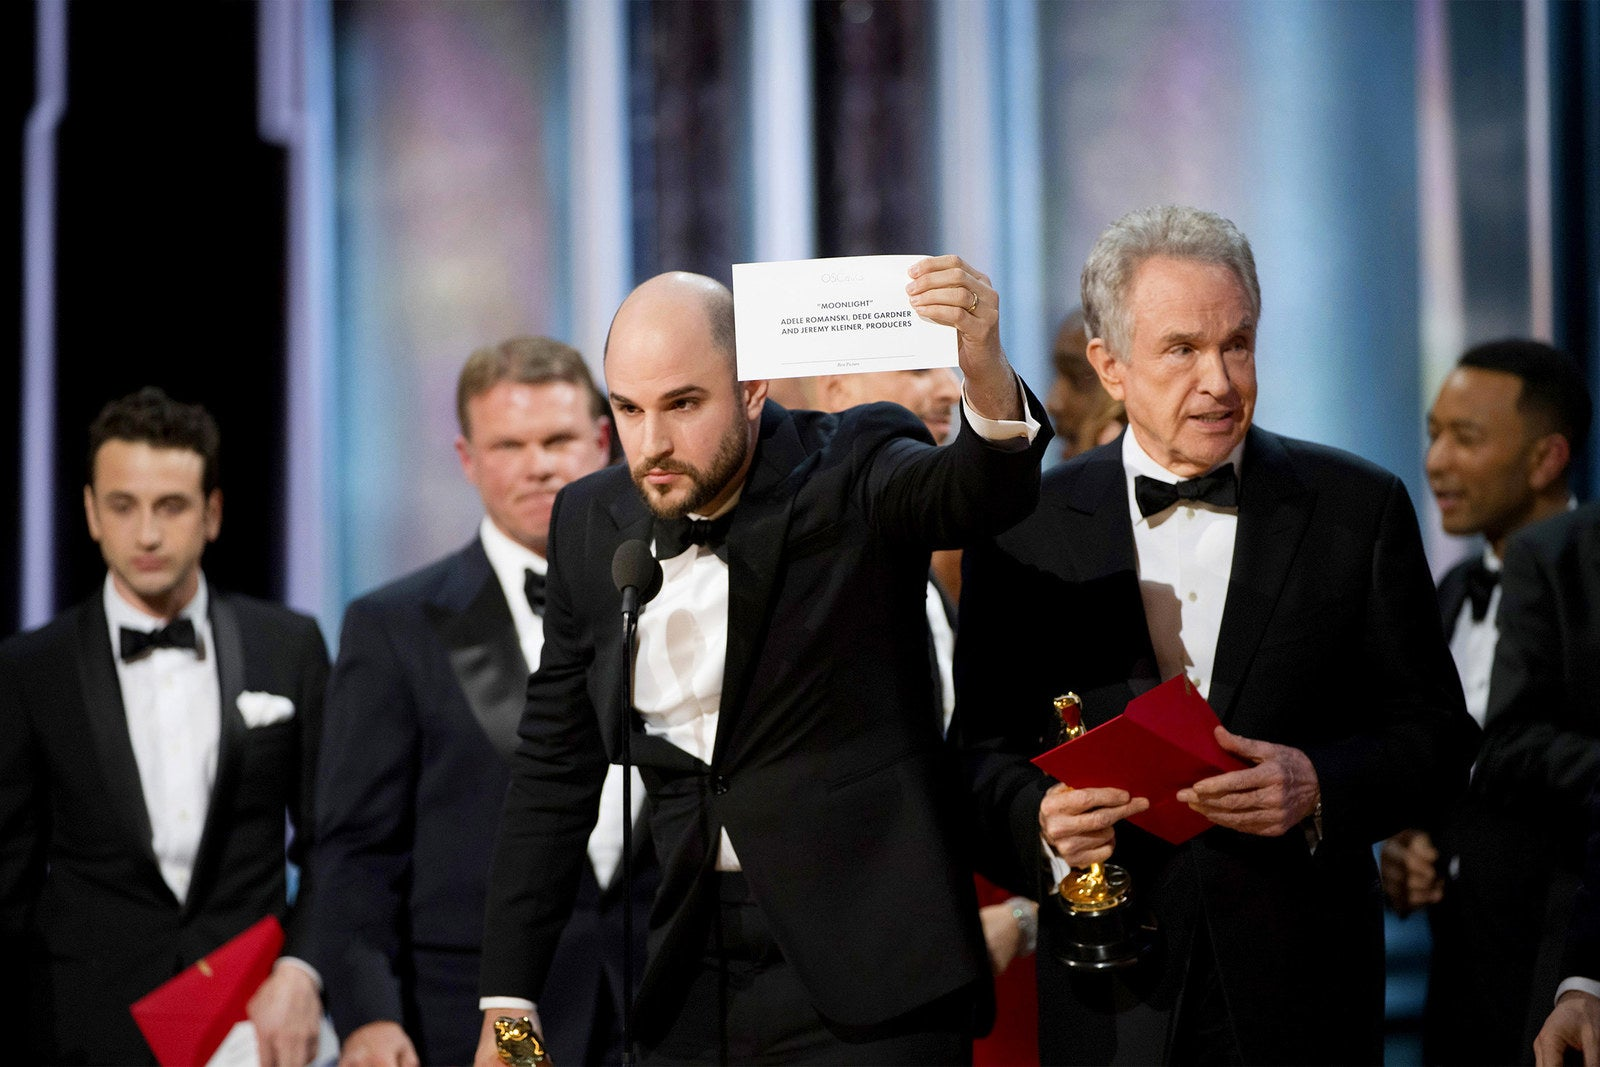 After accidentally being announced as the winner for Best Picture, La La Land producer Jordan Horowitz holds up the actual winning card for Moonlight, alongside actor Warren Beatty and host Jimmy Kimmel at the 89th Annual Academy Awards on Feb. 26, in Hollywood.